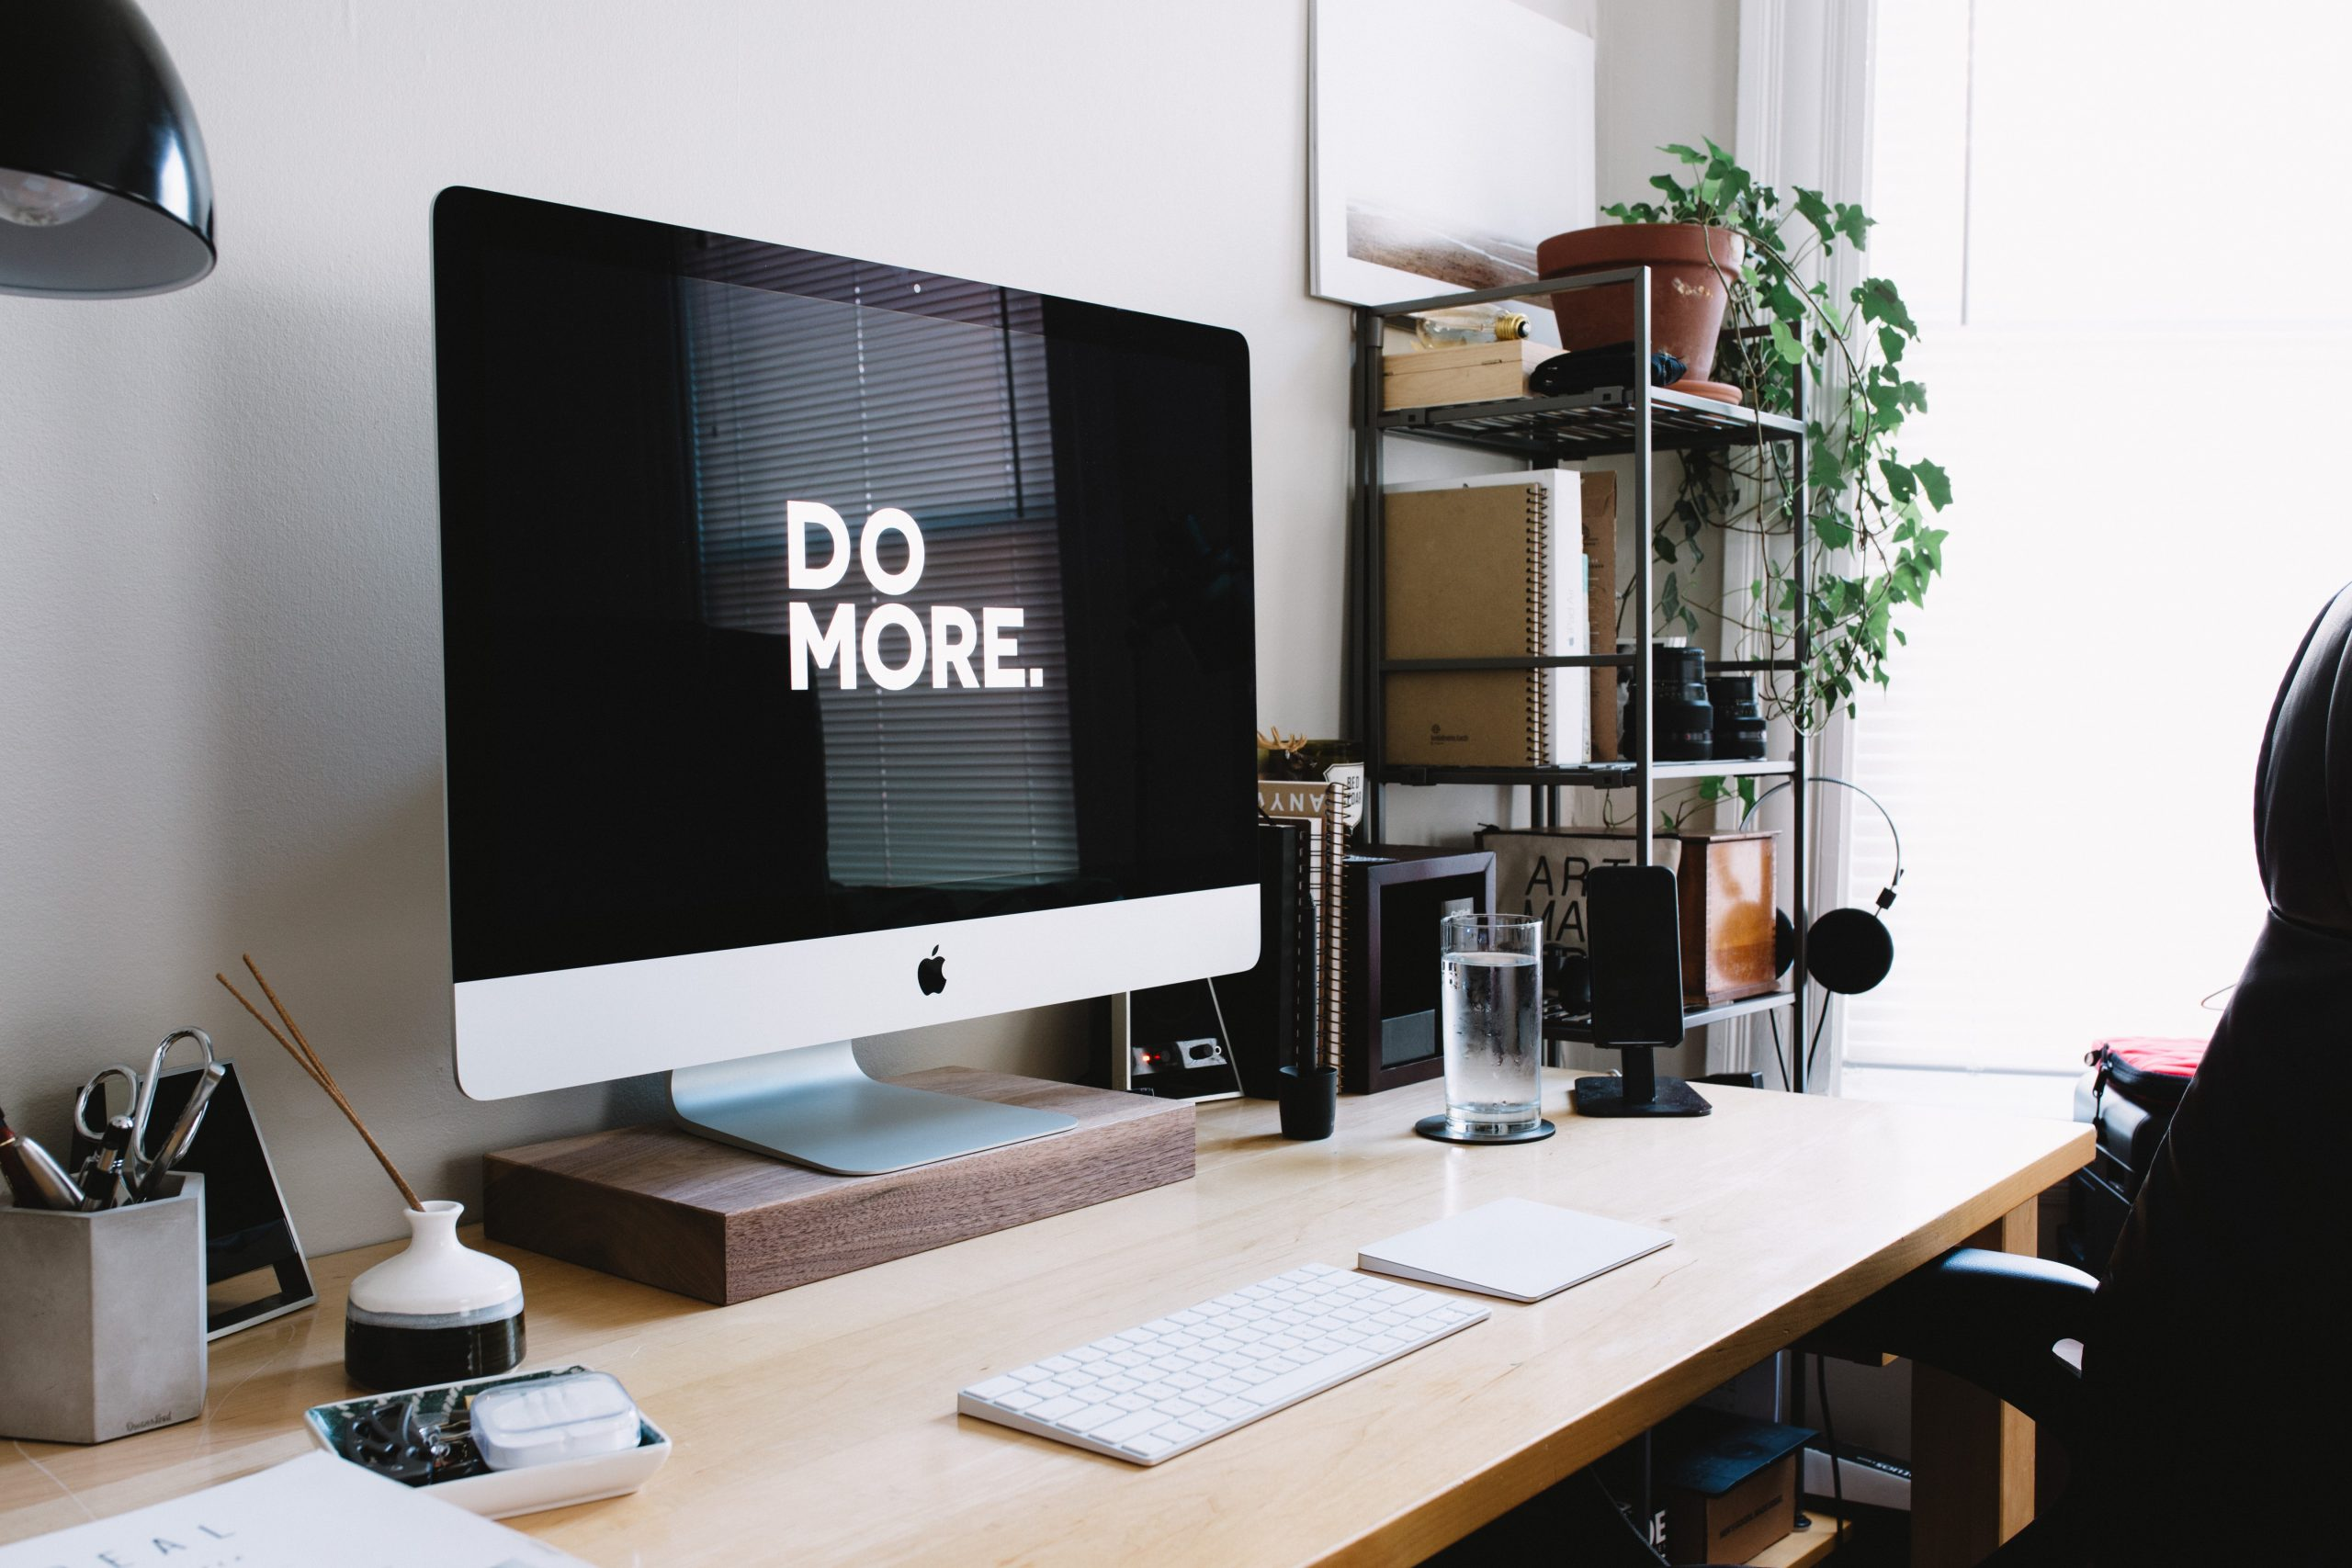 9 hacks to ramp up your productivity and get more done